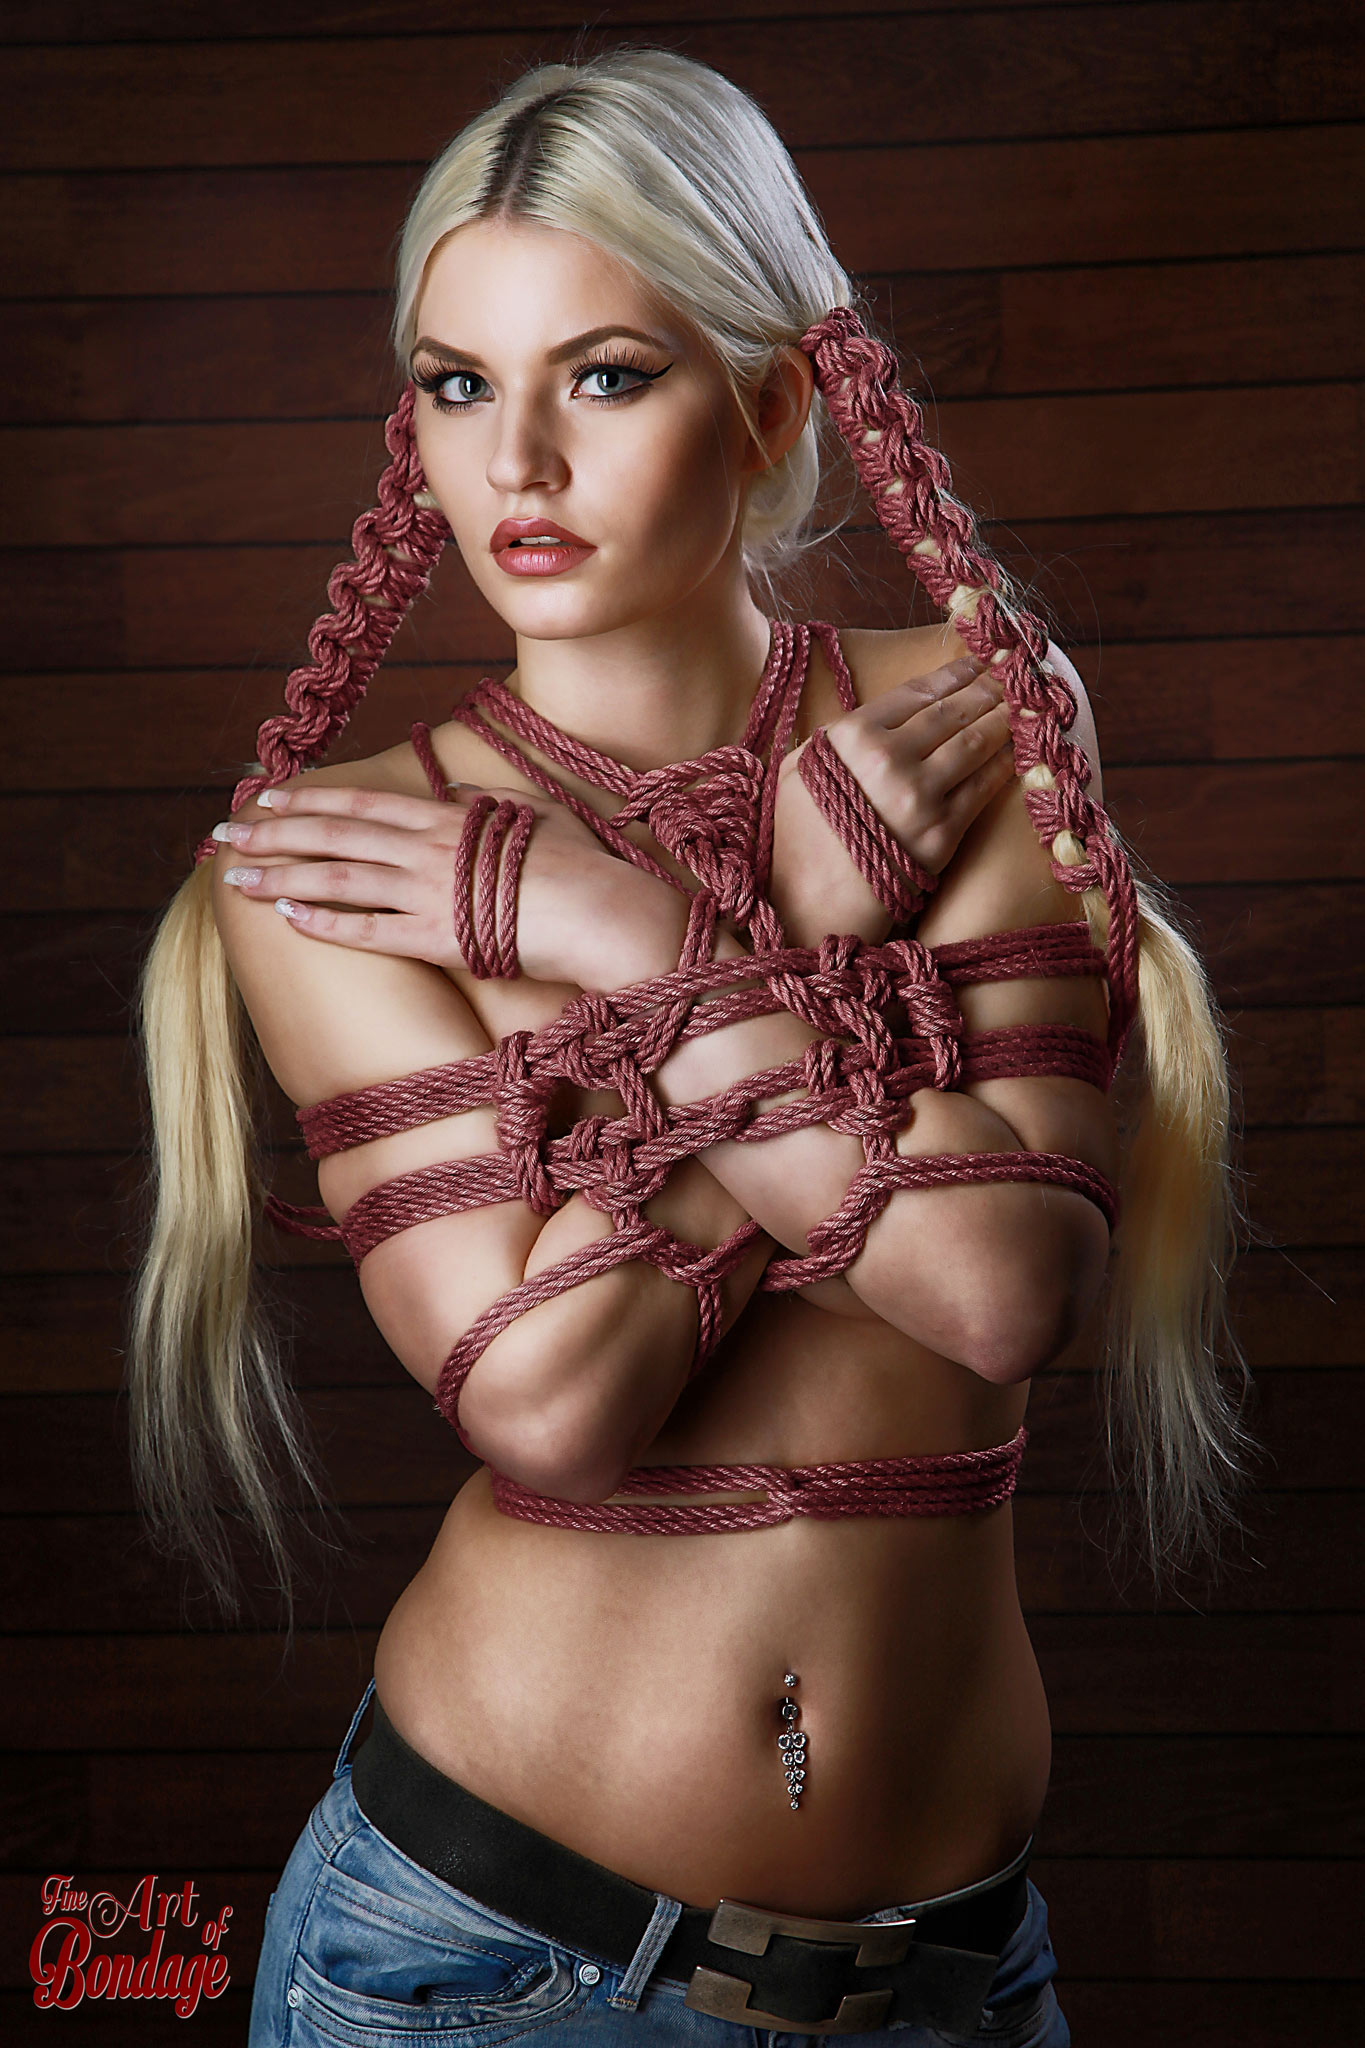 Looking free bondage nude women her